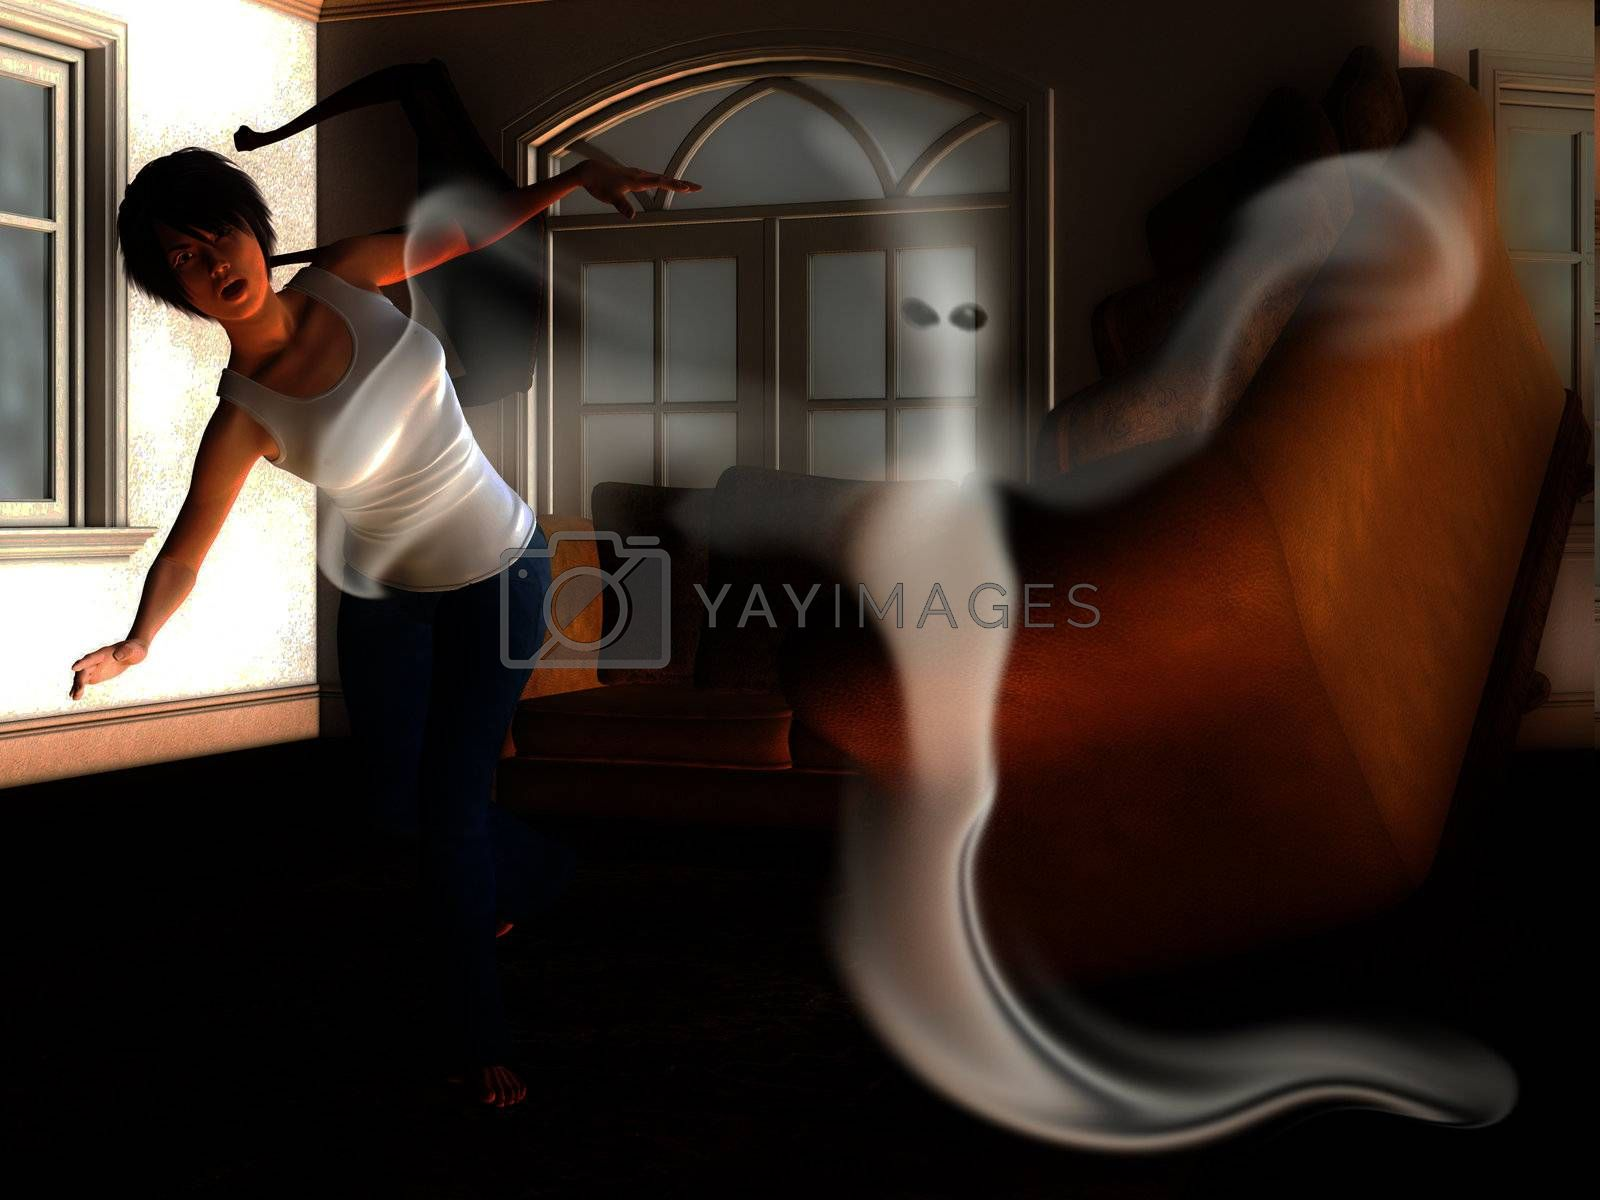 Royalty free image of Ghost in The House by harveysart